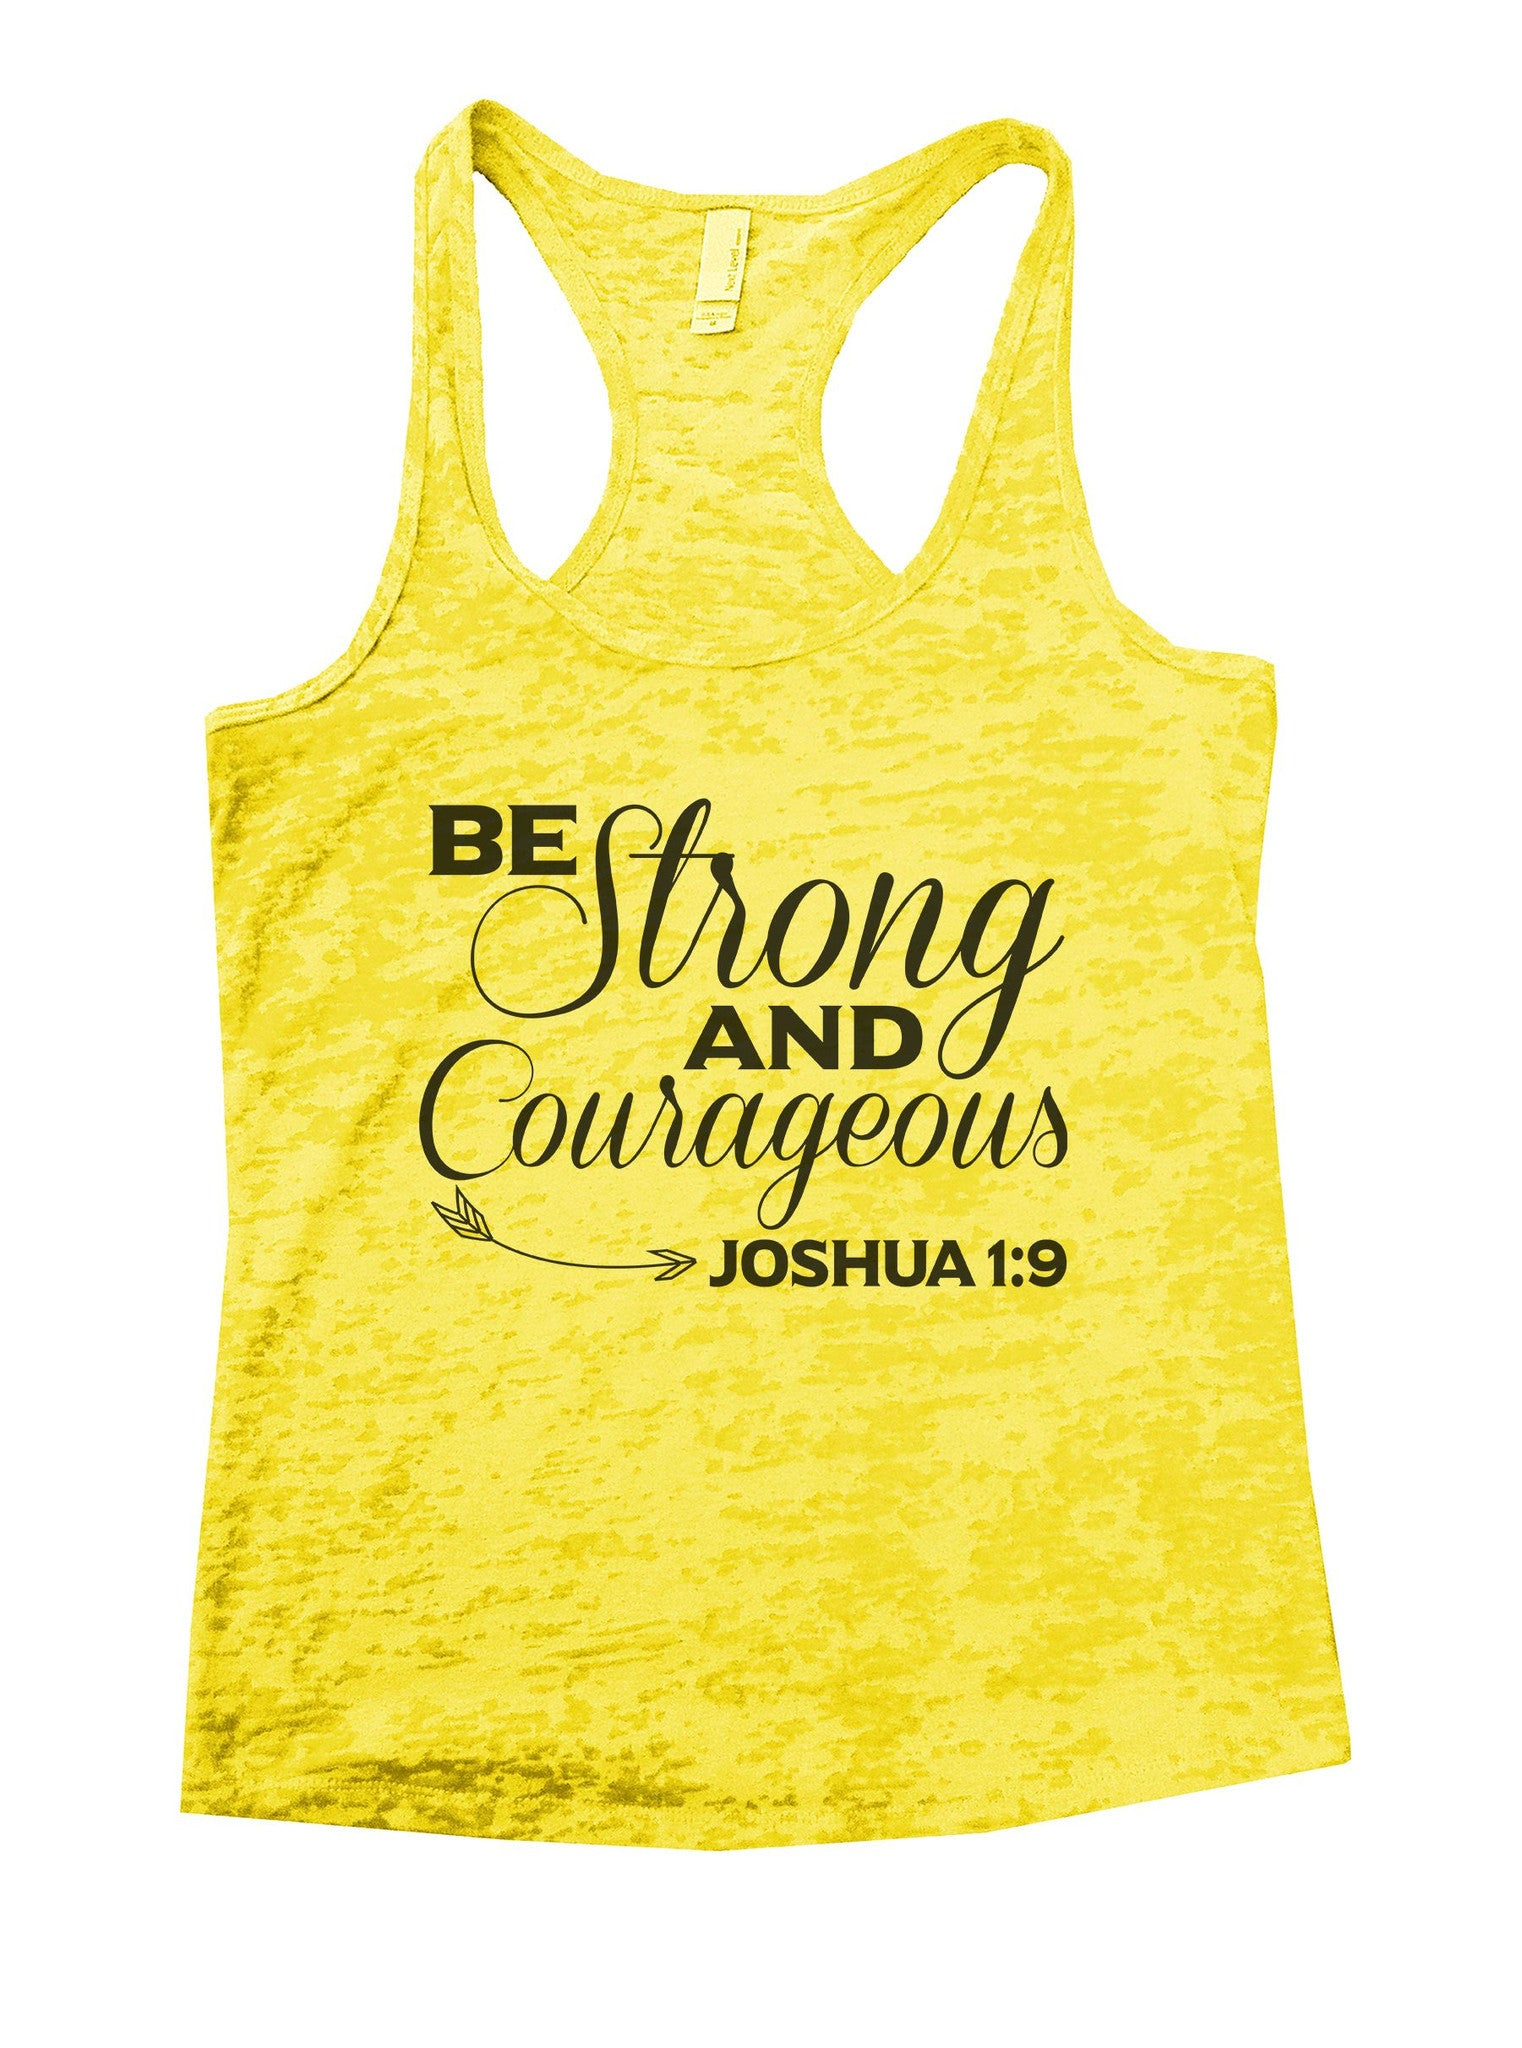 Be Strong And Courageous Joshua 1:9 Burnout Tank Top By BurnoutTankTops.com - 948 - Funny Shirts Tank Tops Burnouts and Triblends  - 7